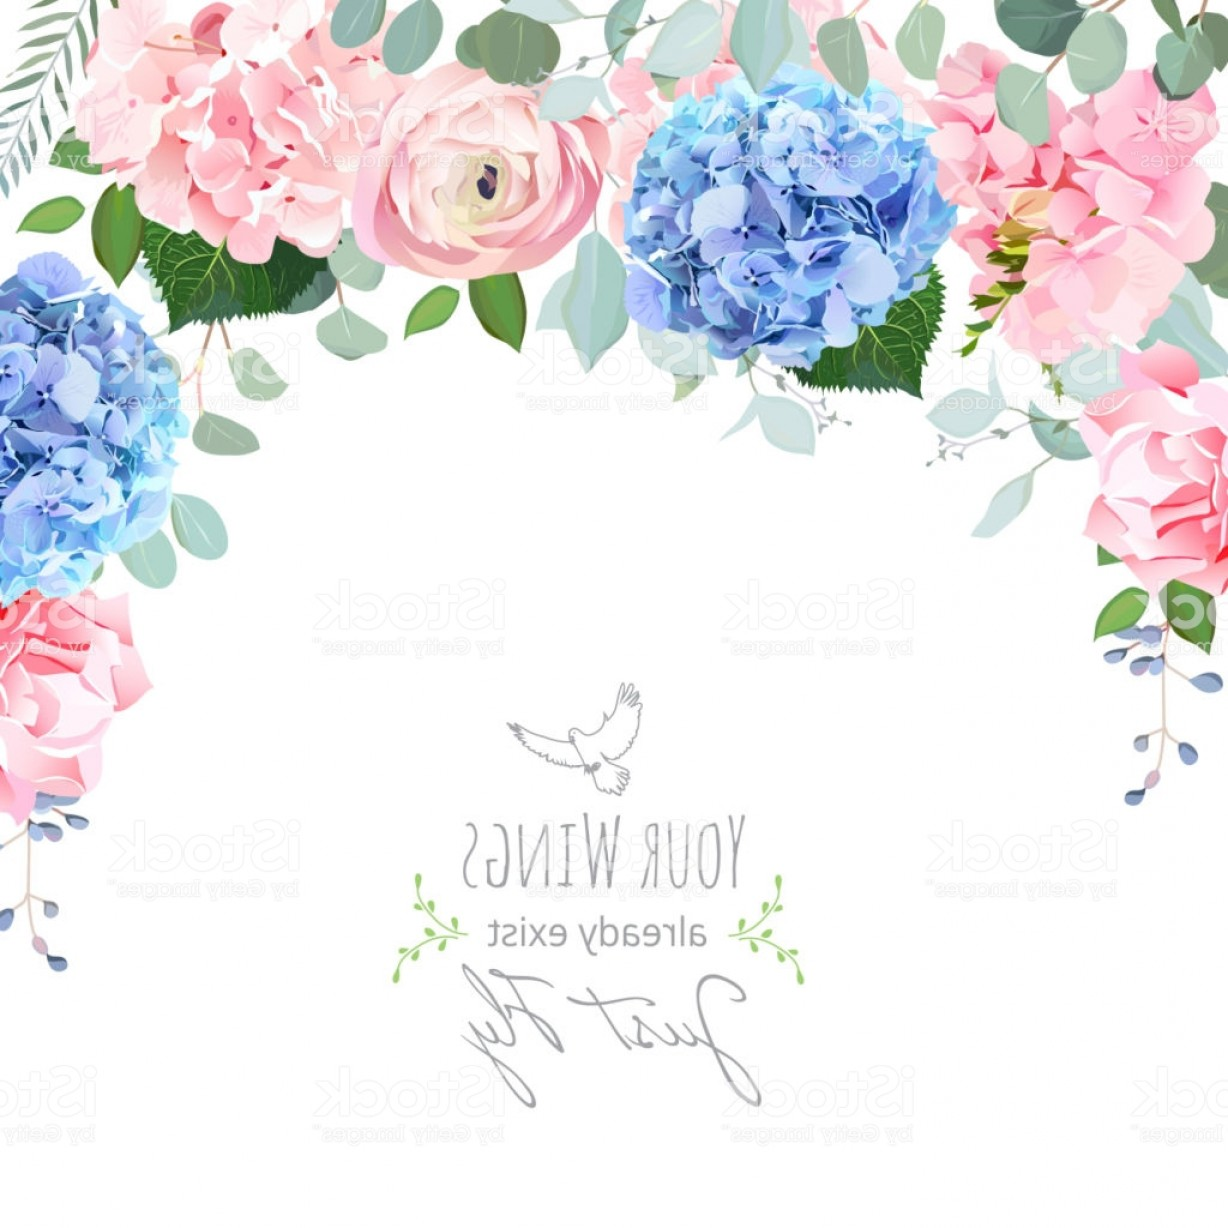 Vector Image Blue Hydrangeas: Blue And Pink Hydrangea Rose Ranunculus Carnation Flowers Gm